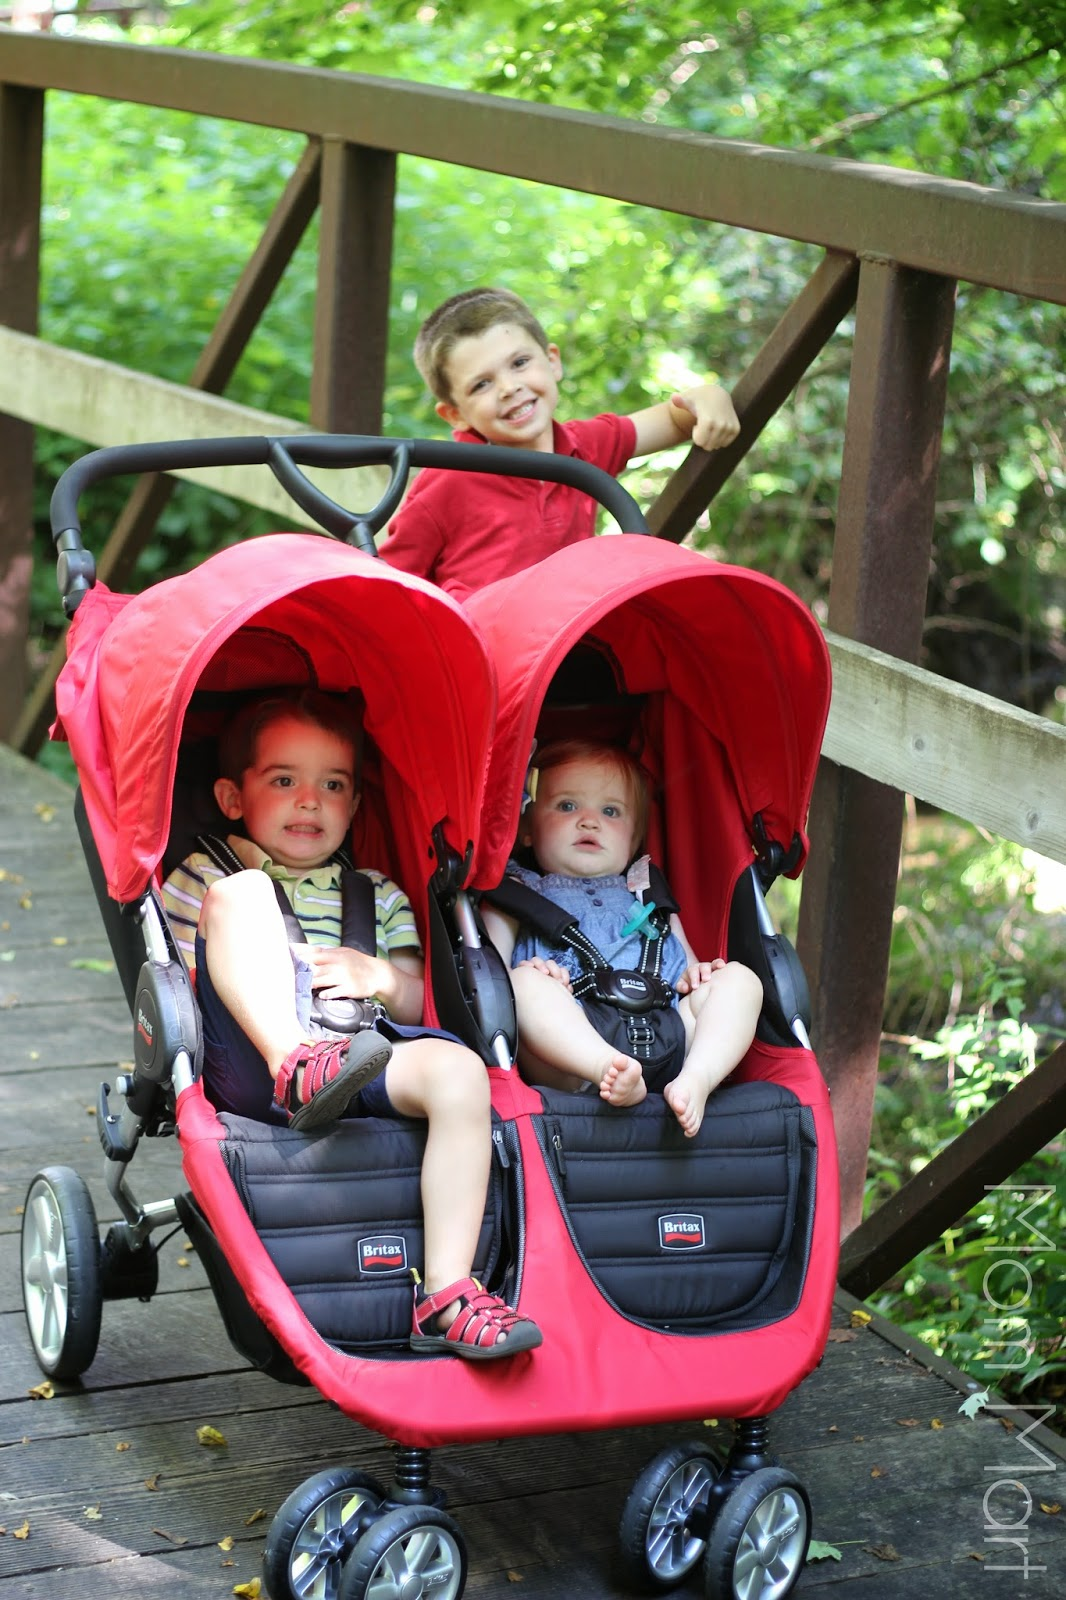 Britax B Agile Double Stroller on the trail with the family.